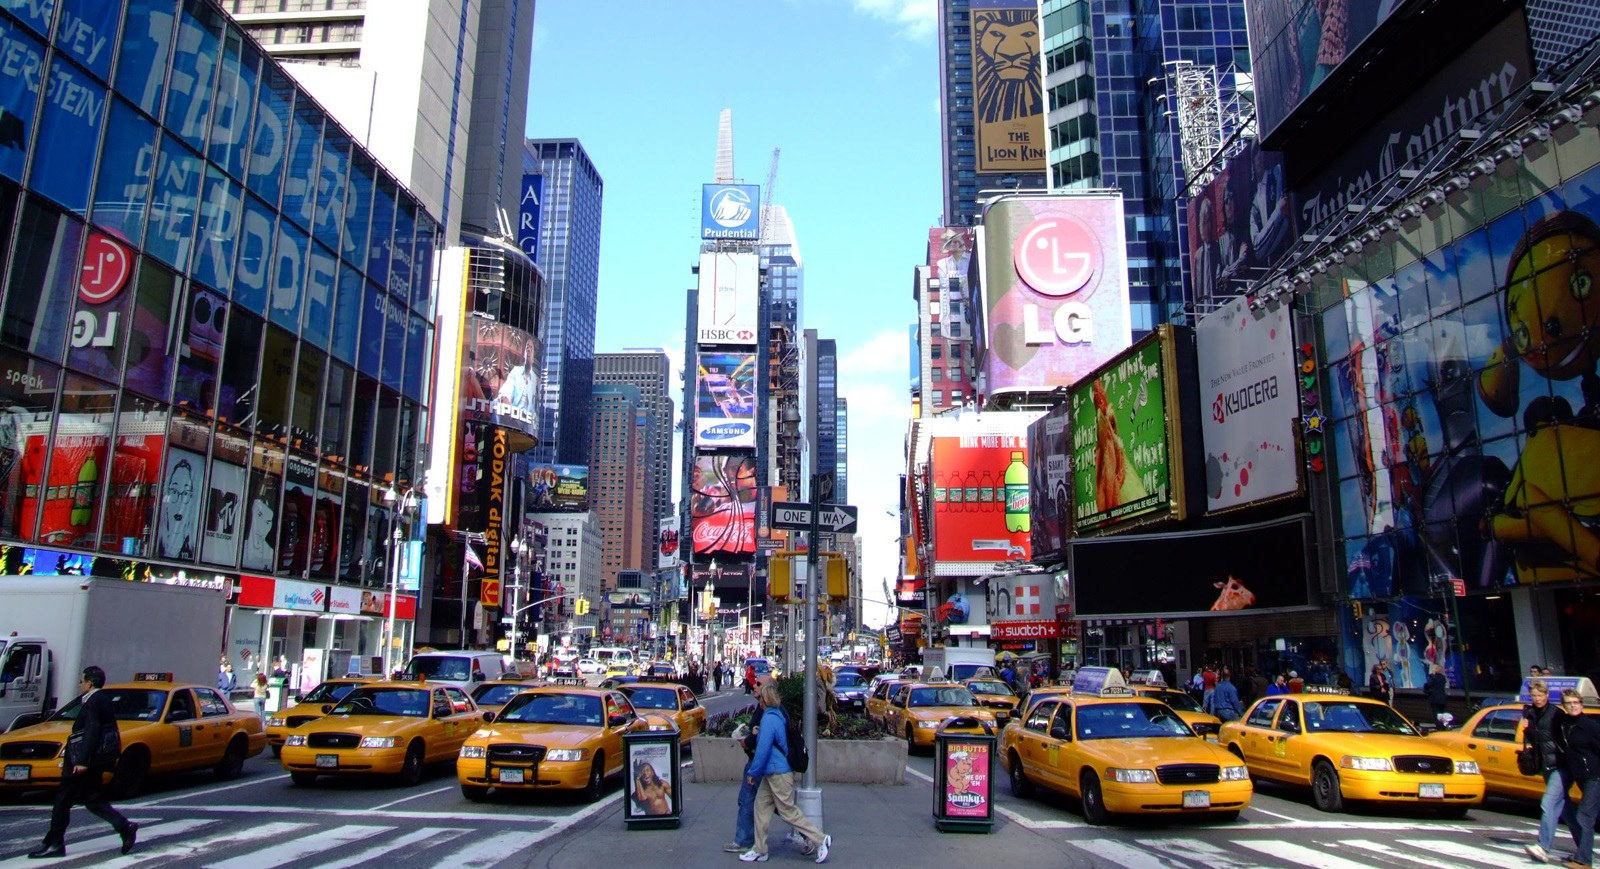 Times Square has seen a number of allegedly fraudulent EB-5 projects in the last few years